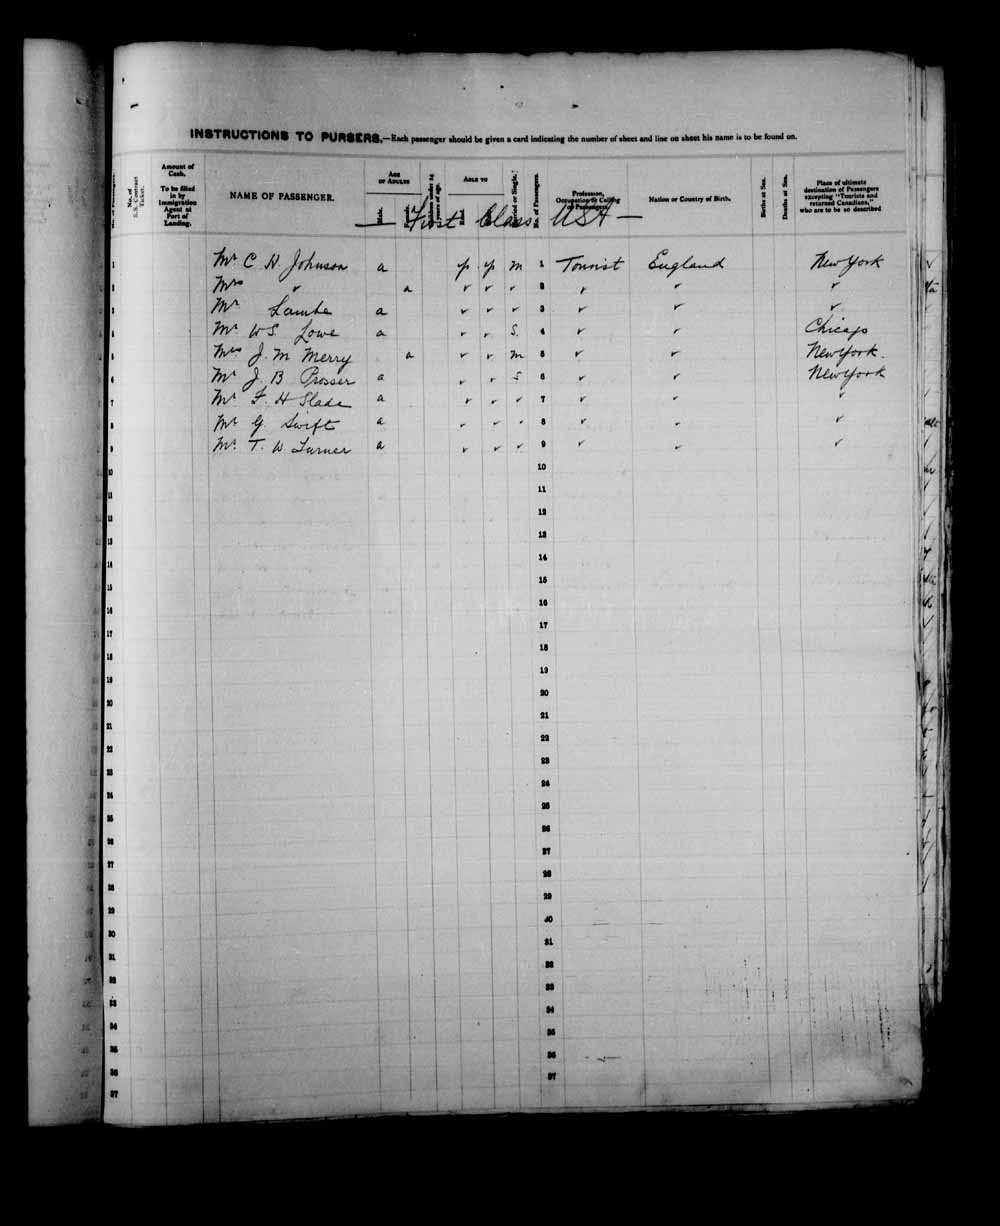 Digitized page of Passenger Lists for Image No.: e003557558